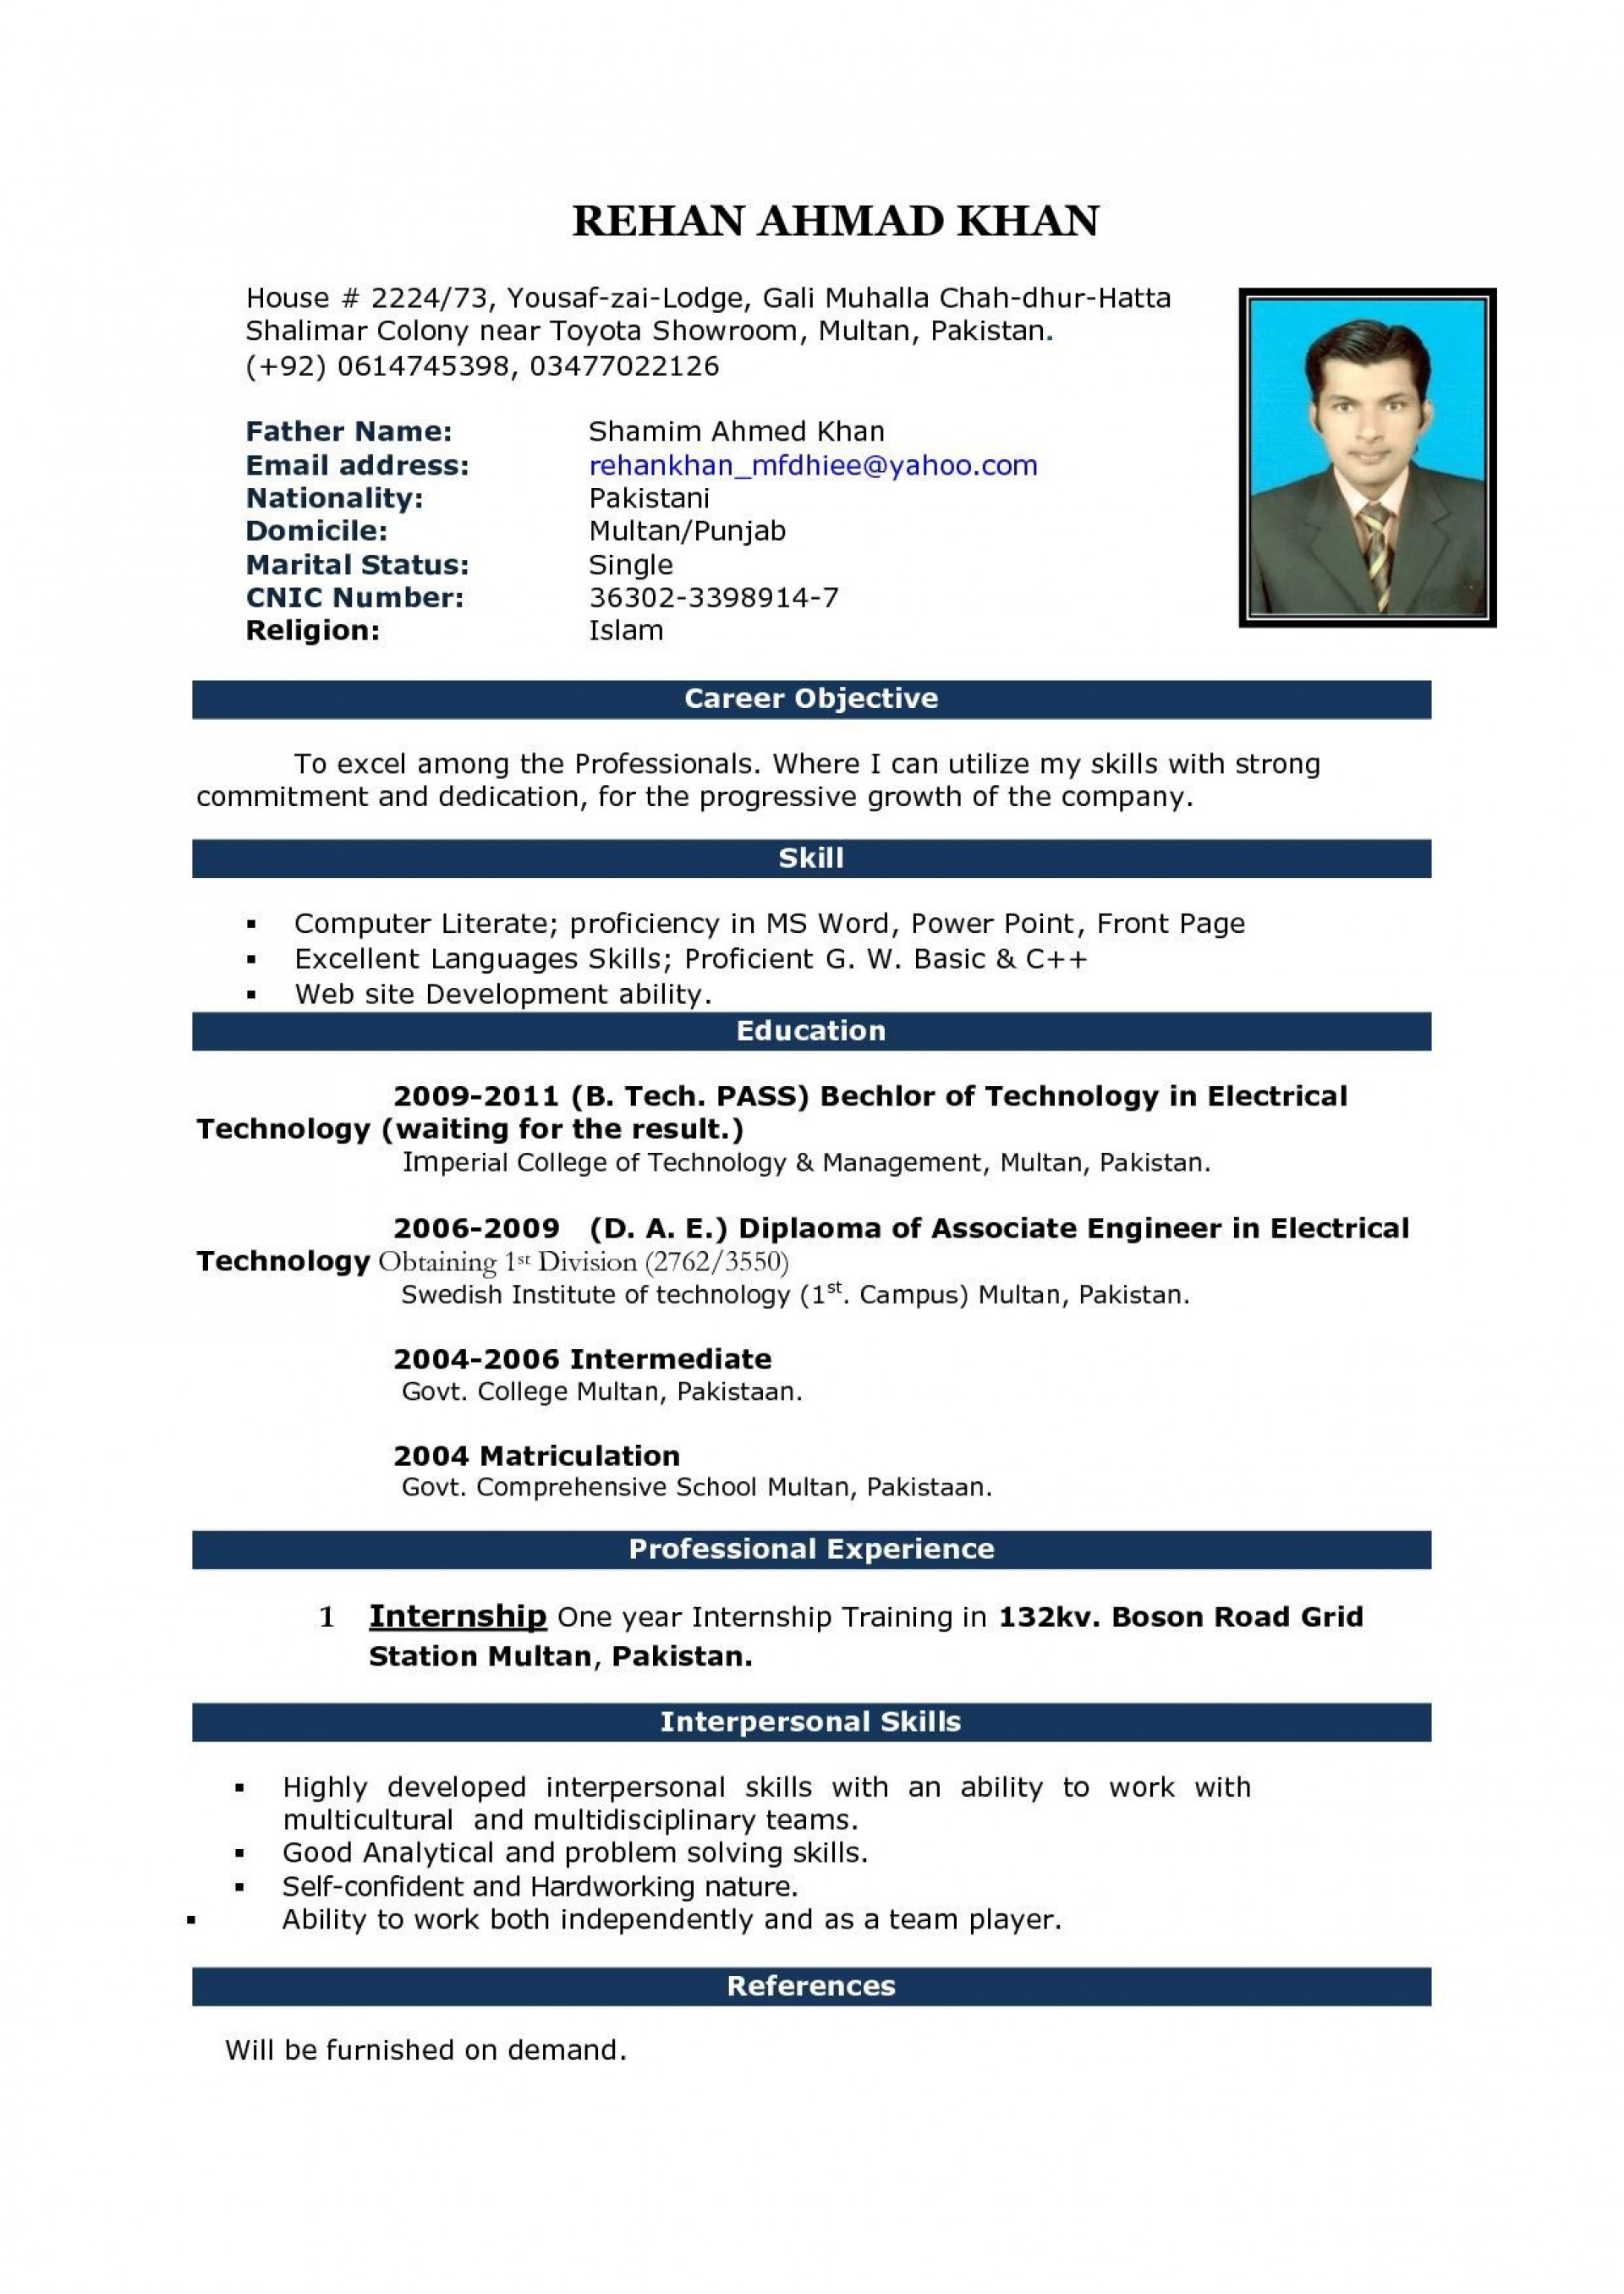 004 Unforgettable M Word 2010 Resume Template Image  Templates Office Free Microsoft Download1920